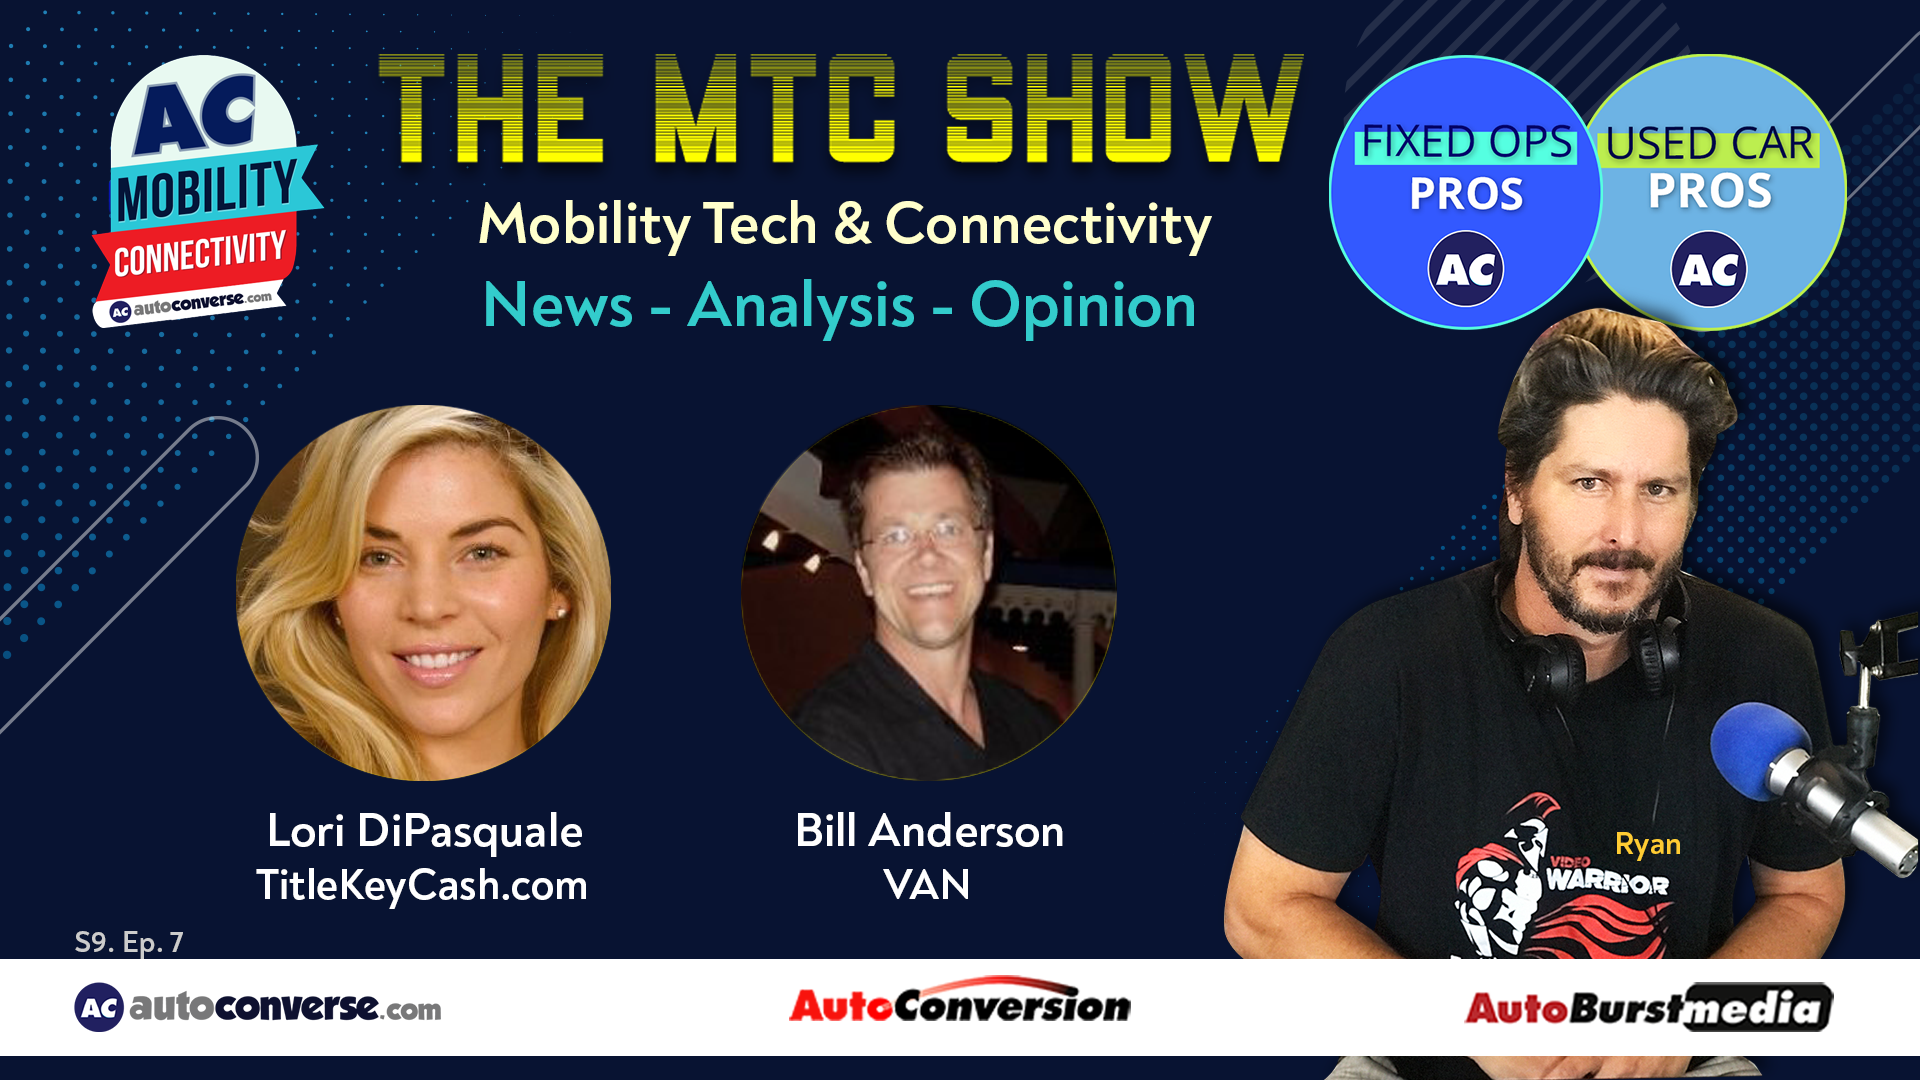 LIVE WED MAR 17.  Blockchain, Cryptocurrency, NFTs, and the Future of Car Buying